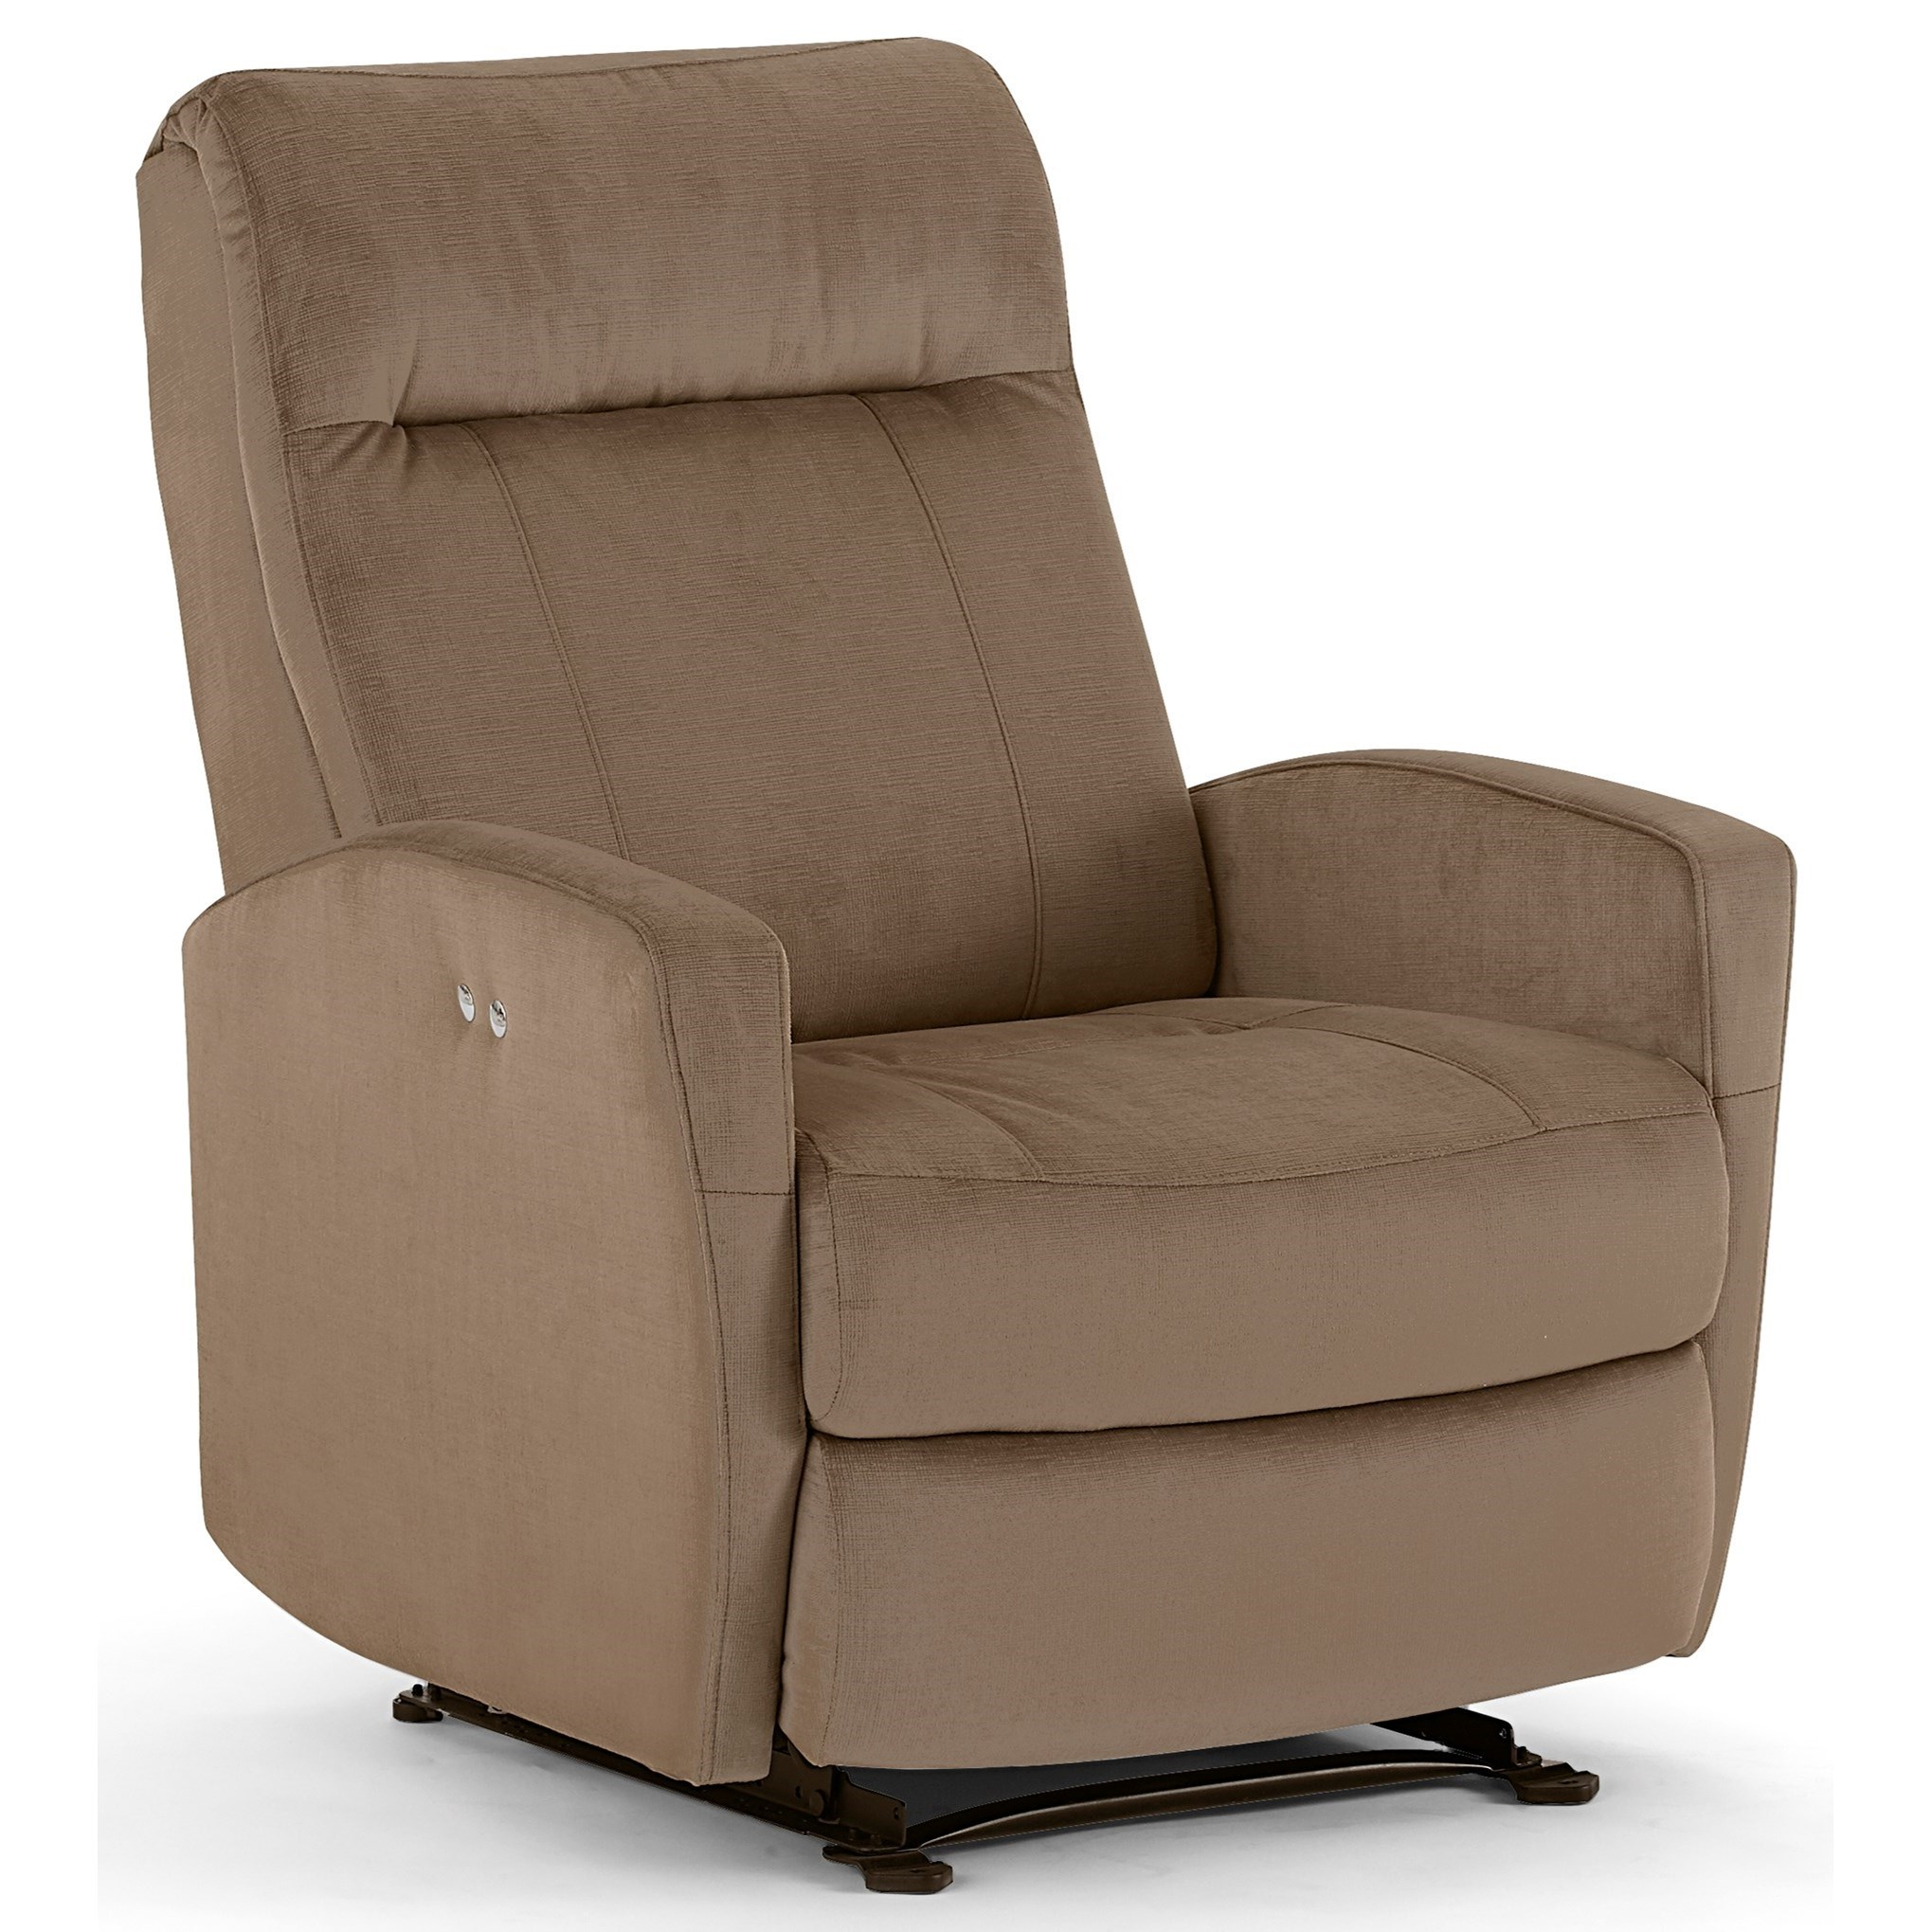 Costilla Space Saver Recliner by Best Home Furnishings at Baer's Furniture